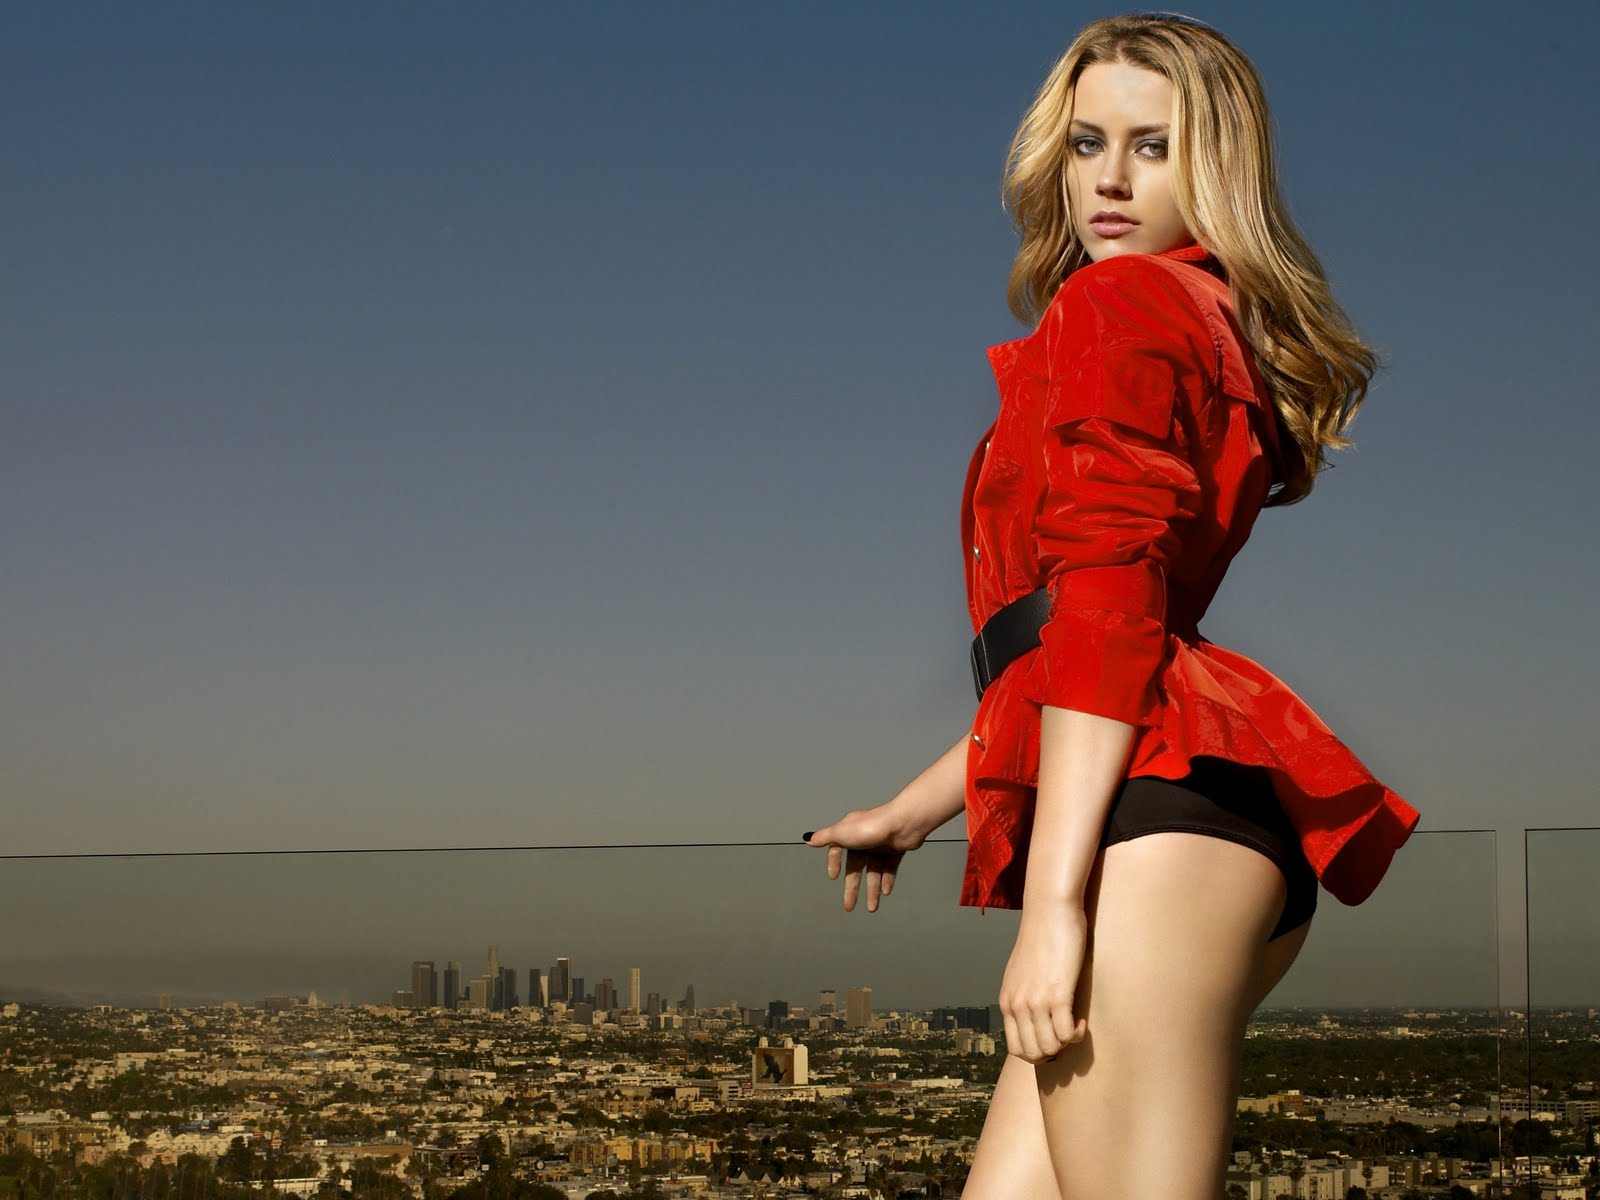 Amber Heard Nue desktop-pedia: amber heard hollywood actress wallpapers - hd